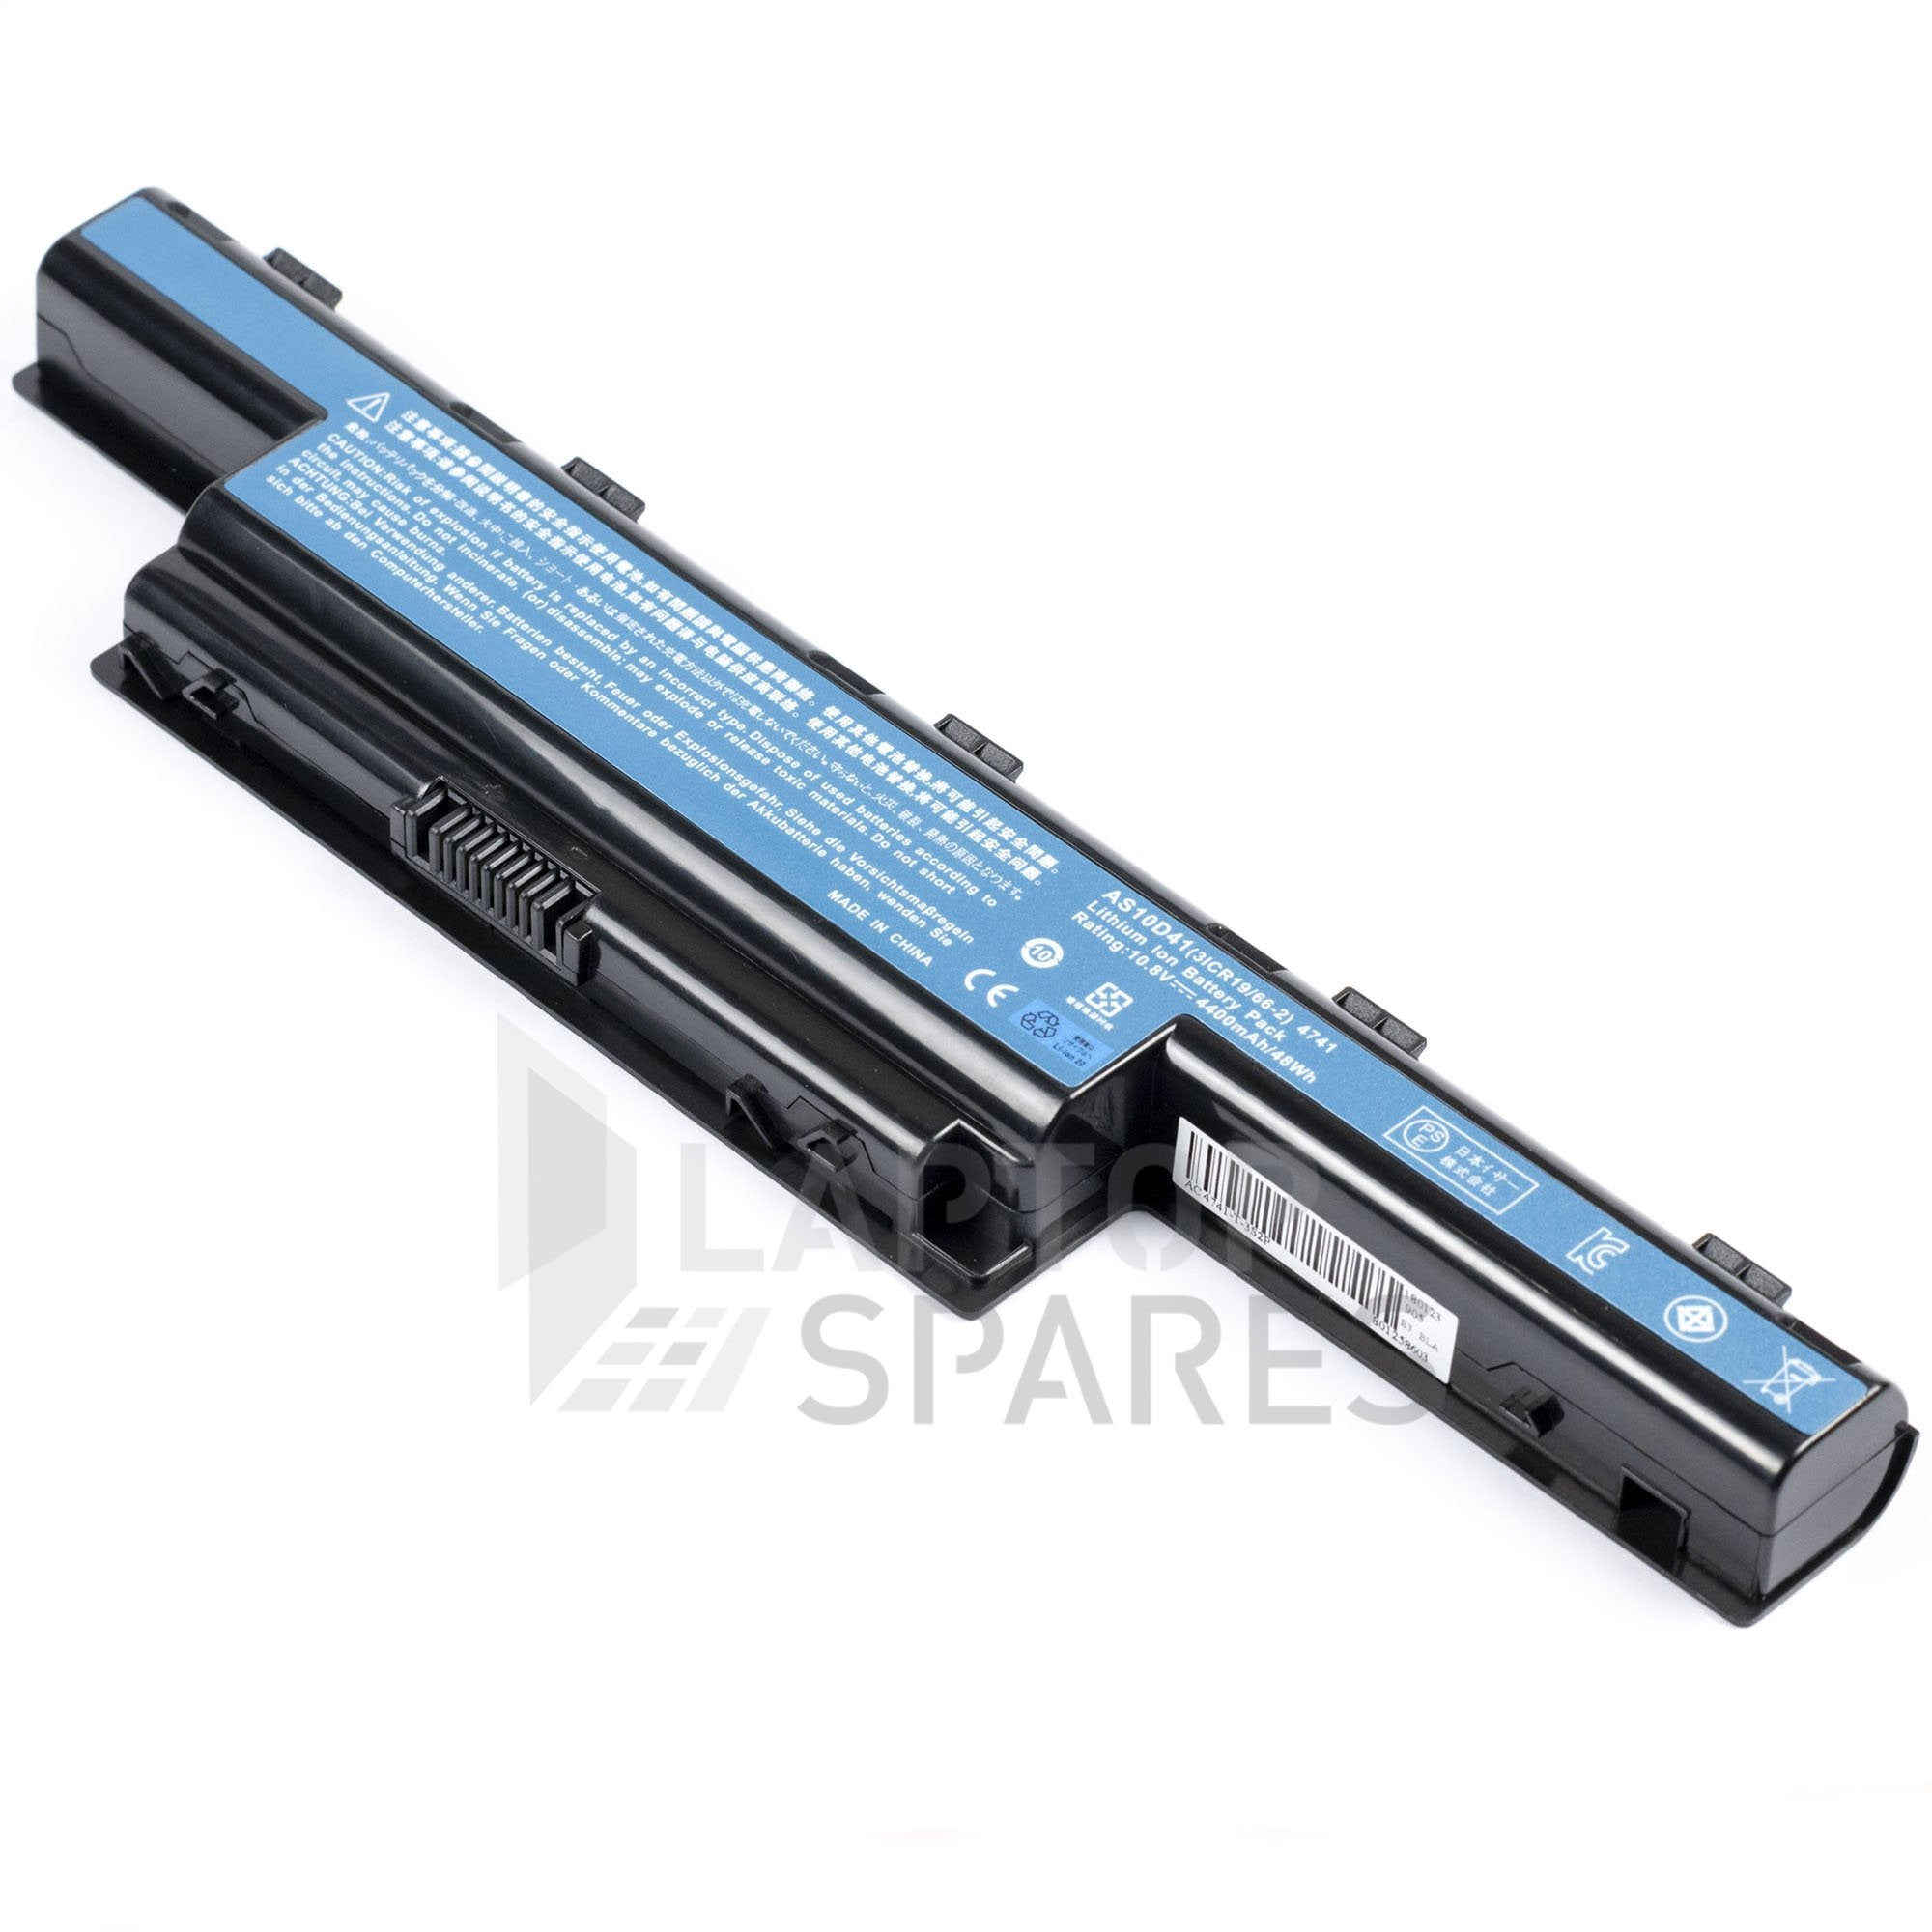 Acer AS10D31 AS10D41 AS10D51 4400mAh 6 Cell Battery